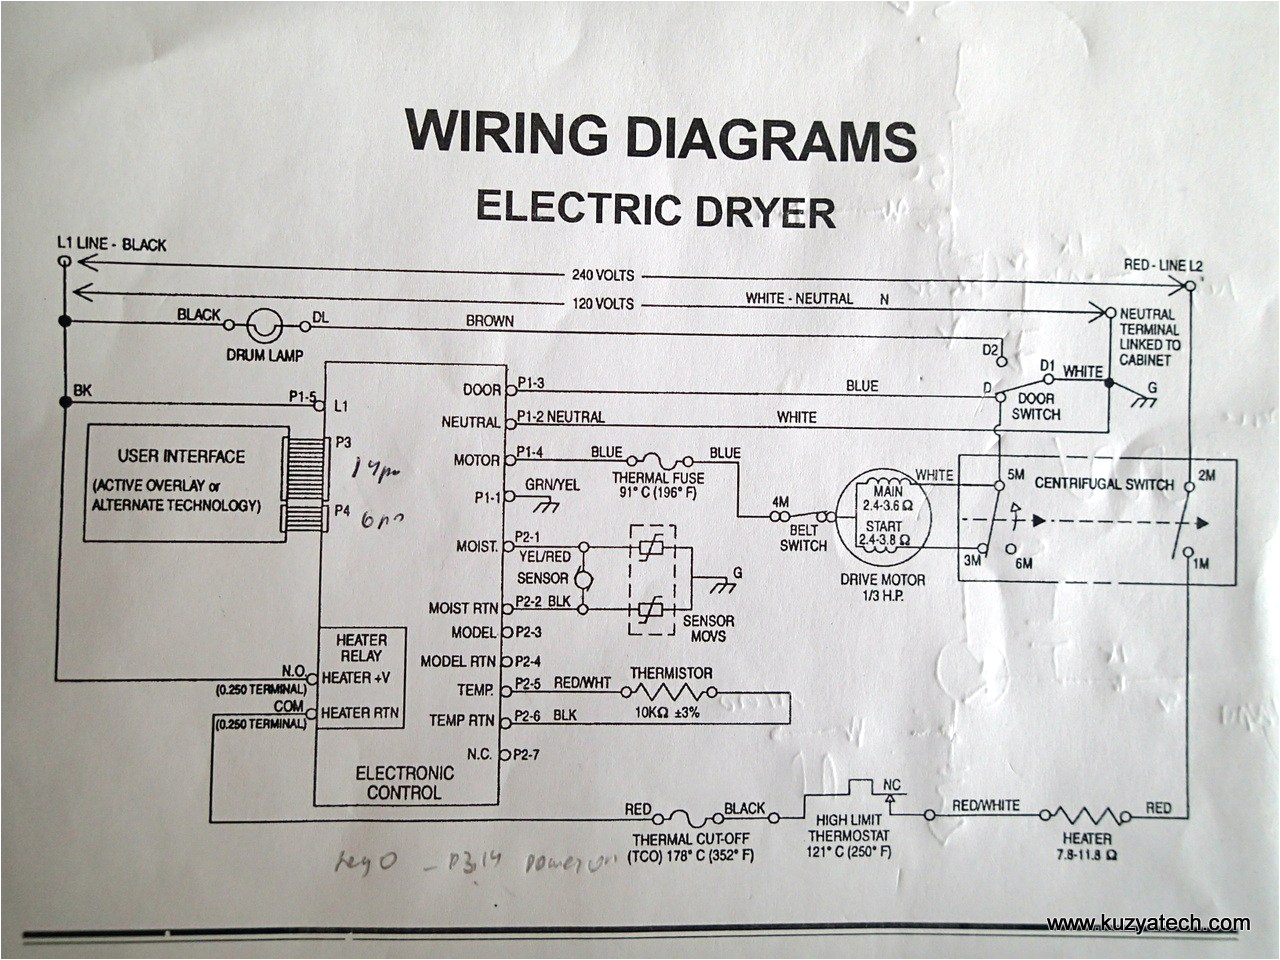 maytag duet dryer wiring diagram wiring diagram toolbox whirlpool